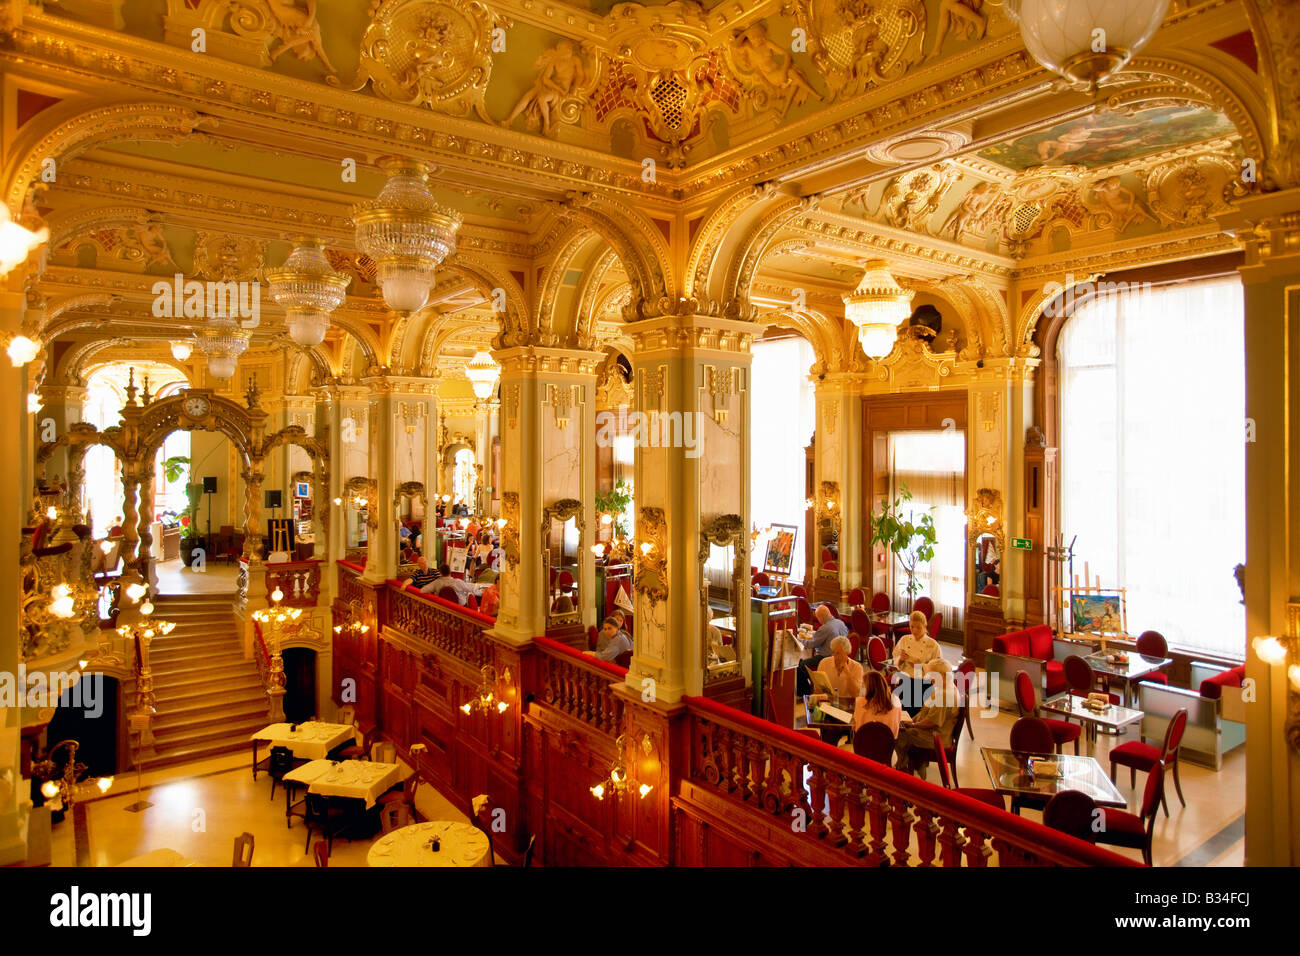 the new york cafe in budapest hungary stock photo royalty free image 19154258 alamy. Black Bedroom Furniture Sets. Home Design Ideas